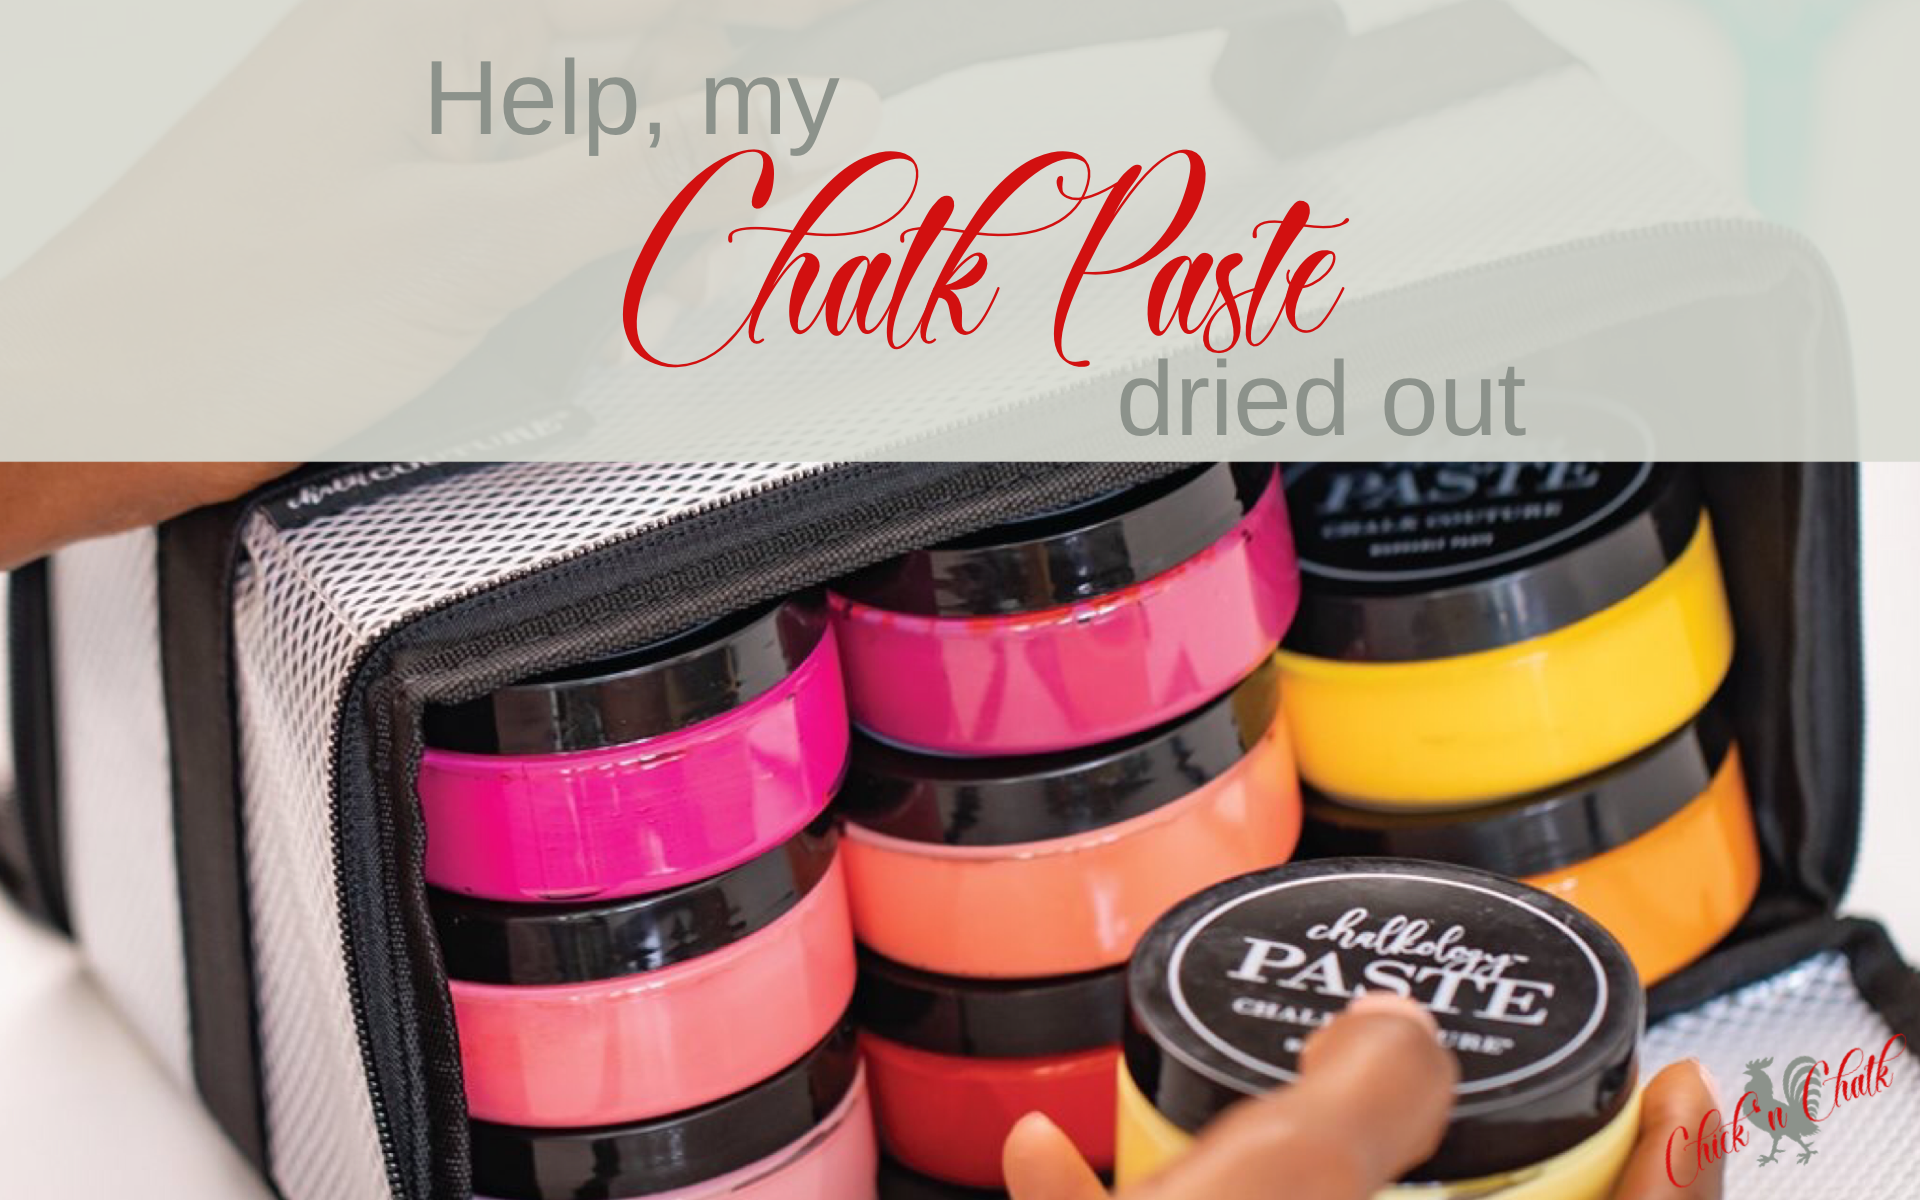 Chalk paste dried out